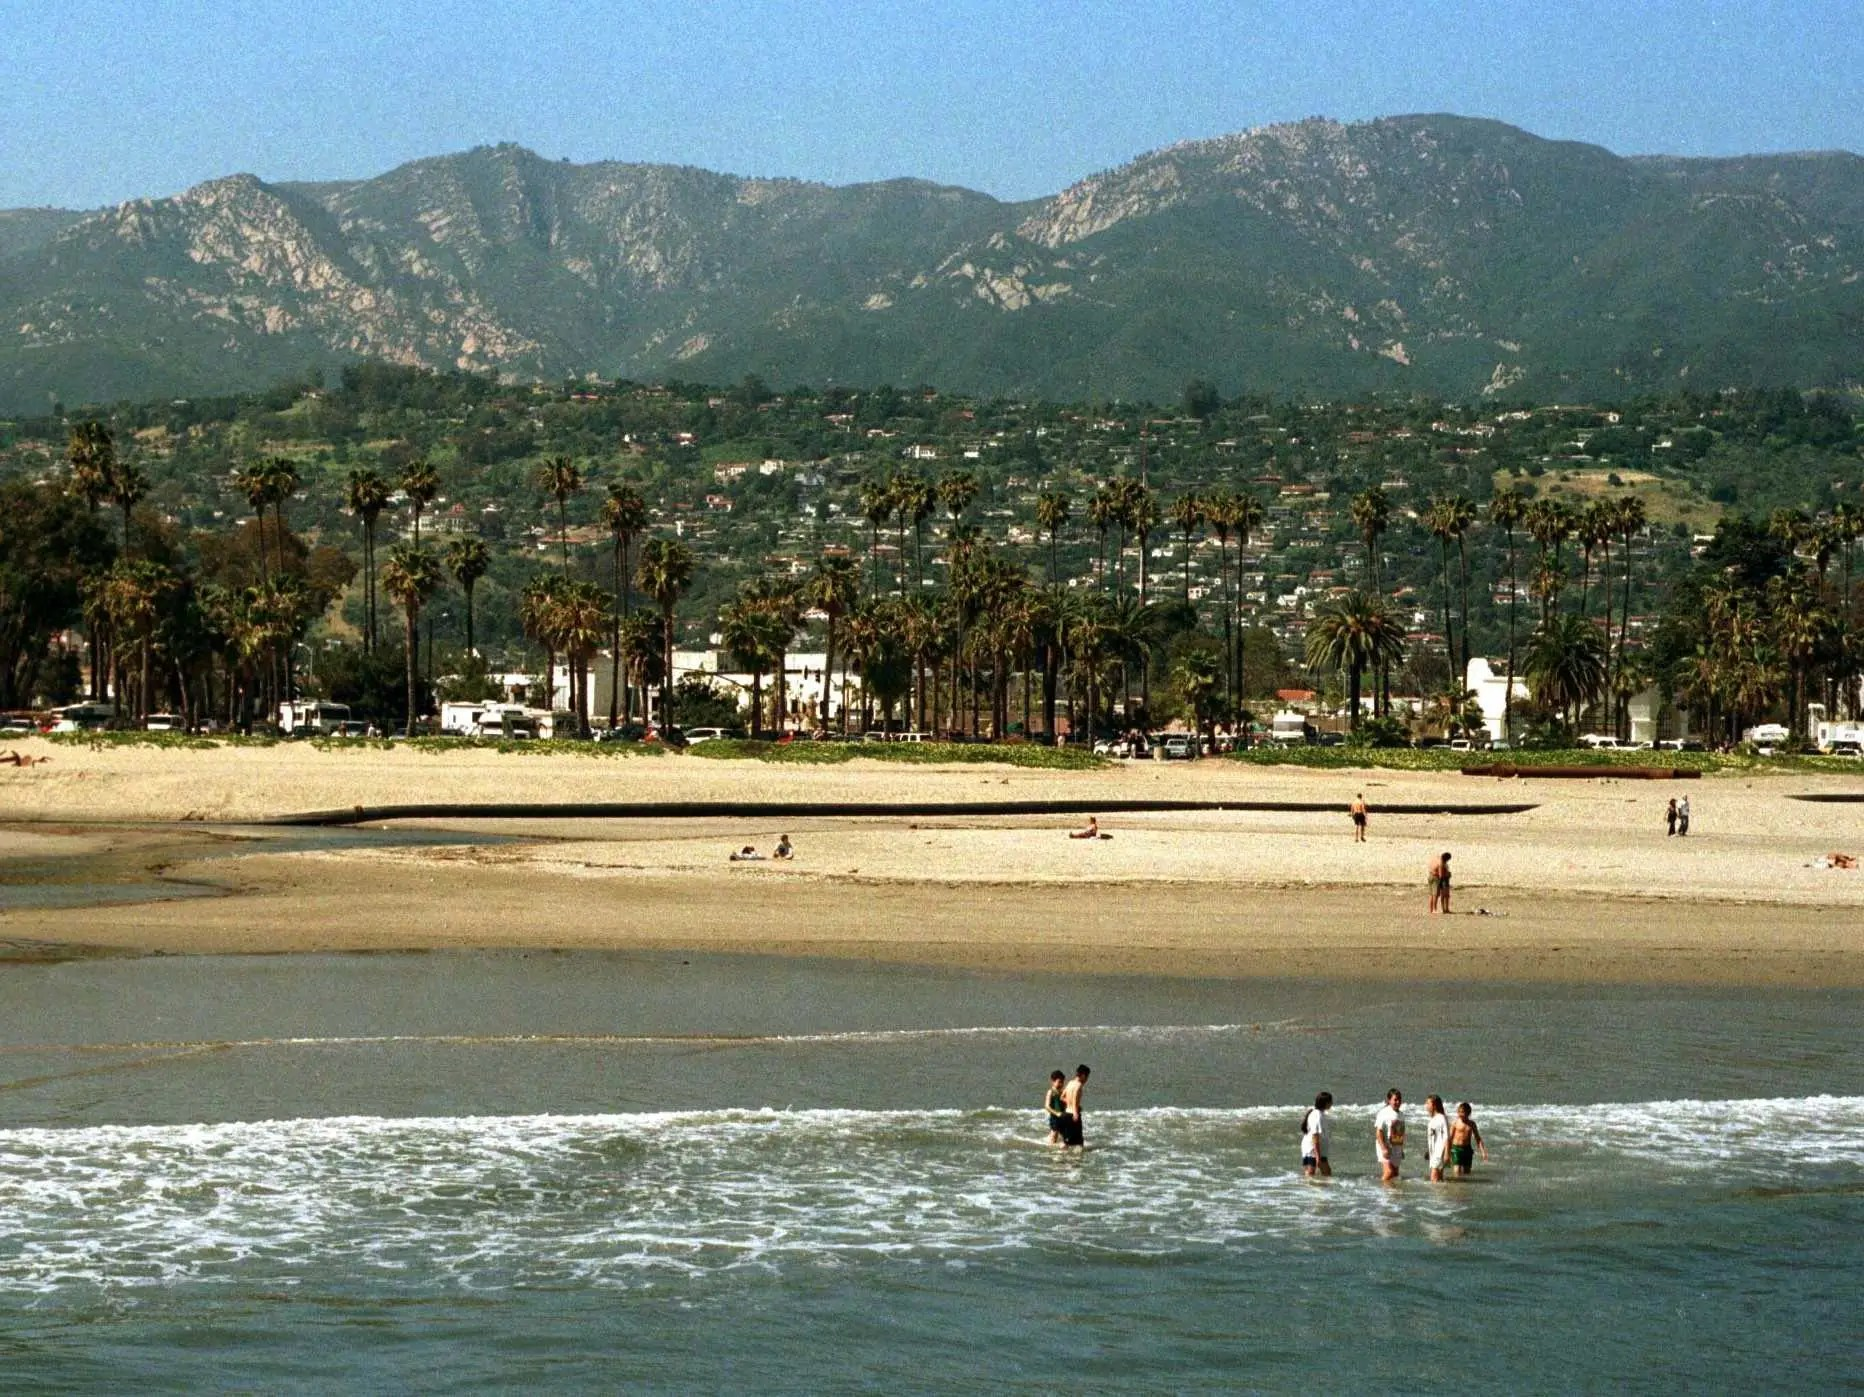 16. Santa Barbara, California